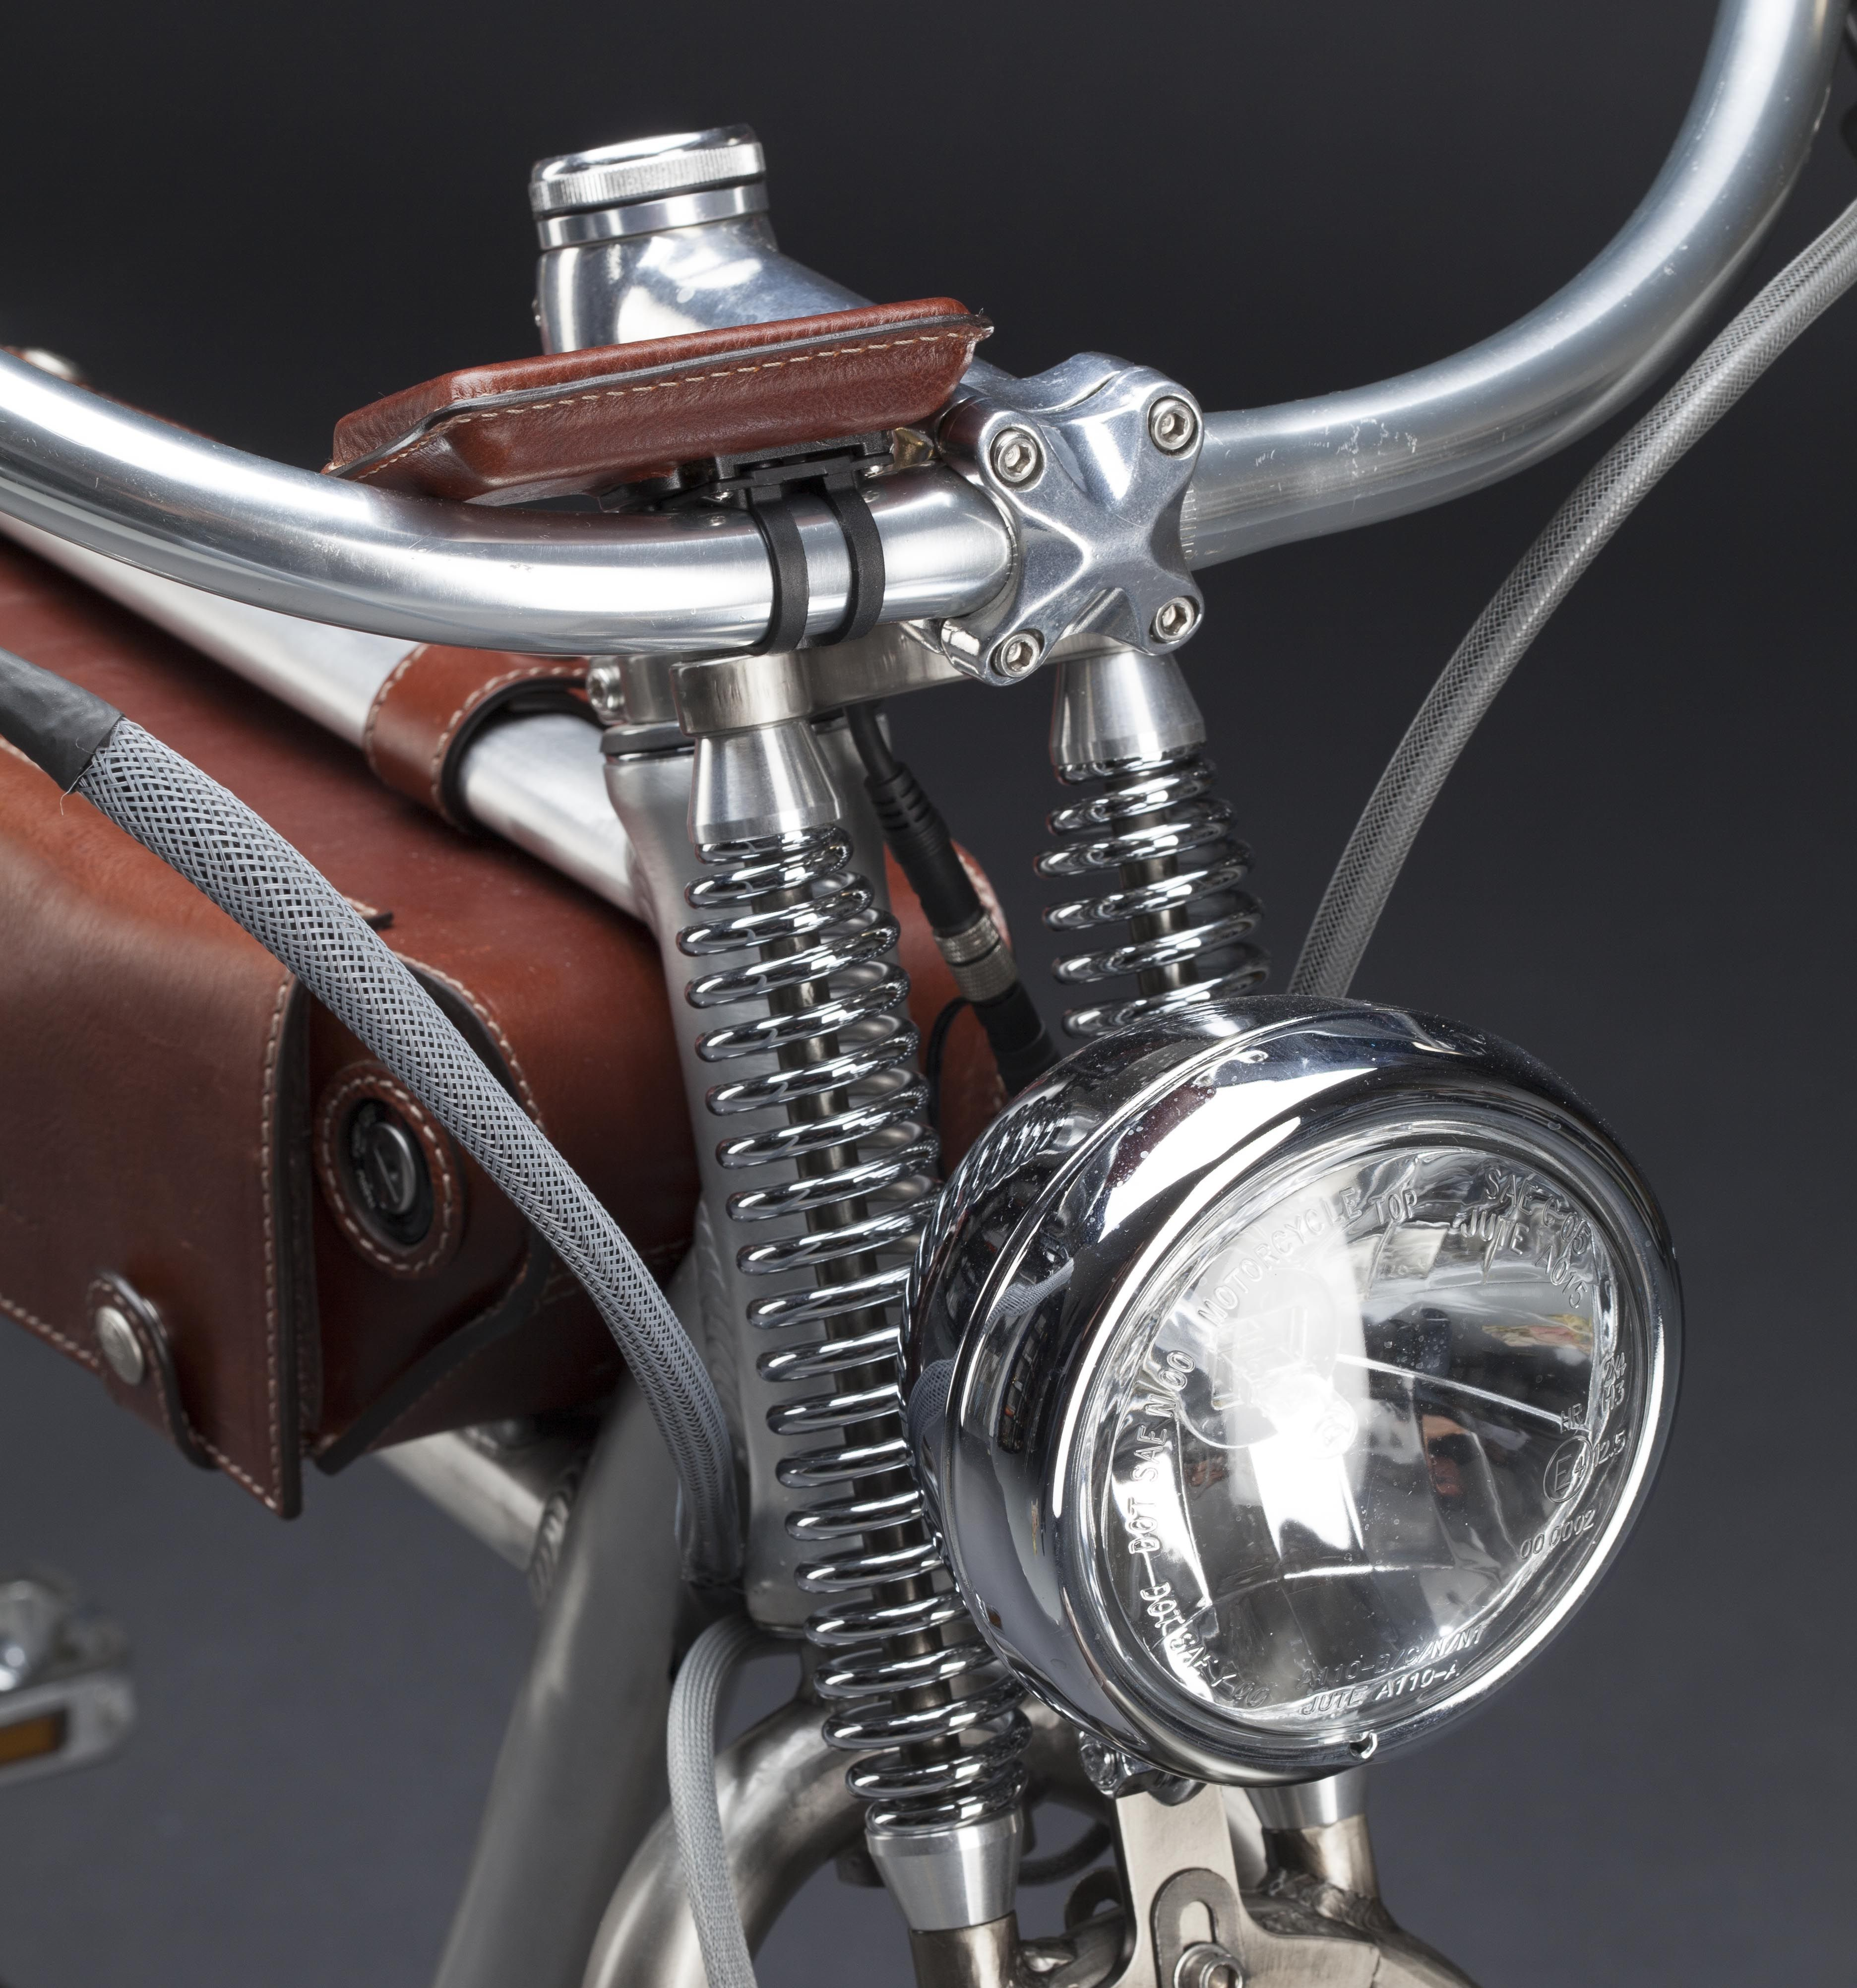 Electric Motor Kits For Push Bikes: Front Fork/Head Lamp Details